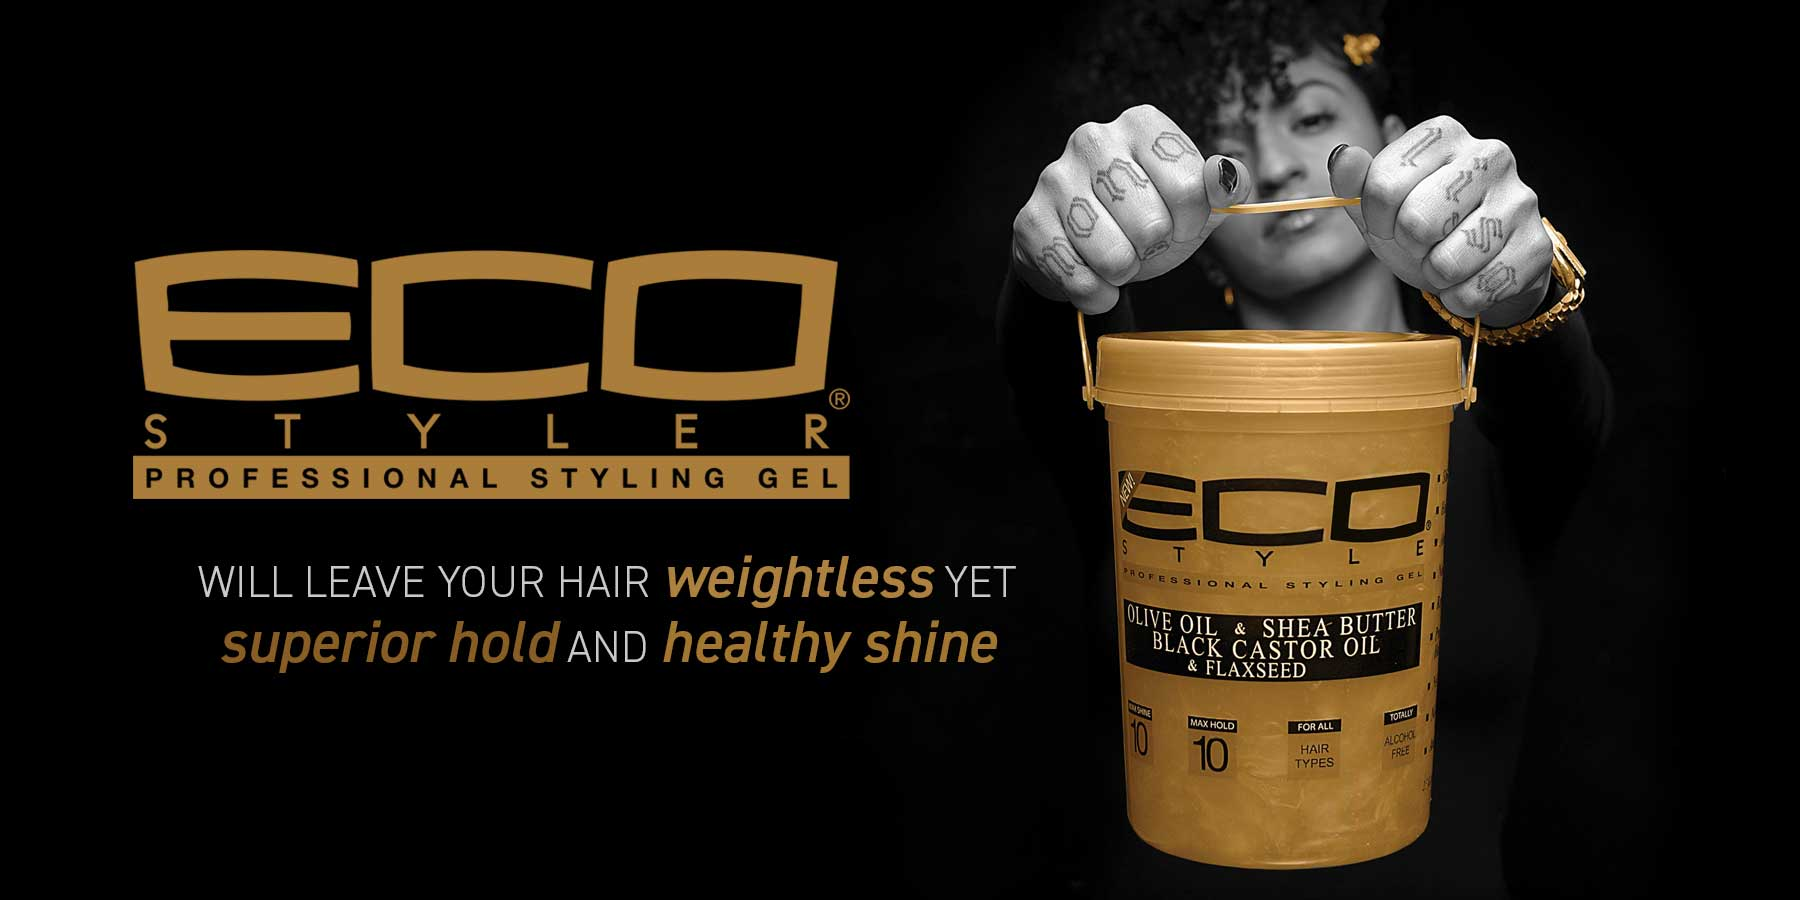 Eco Styler Gold